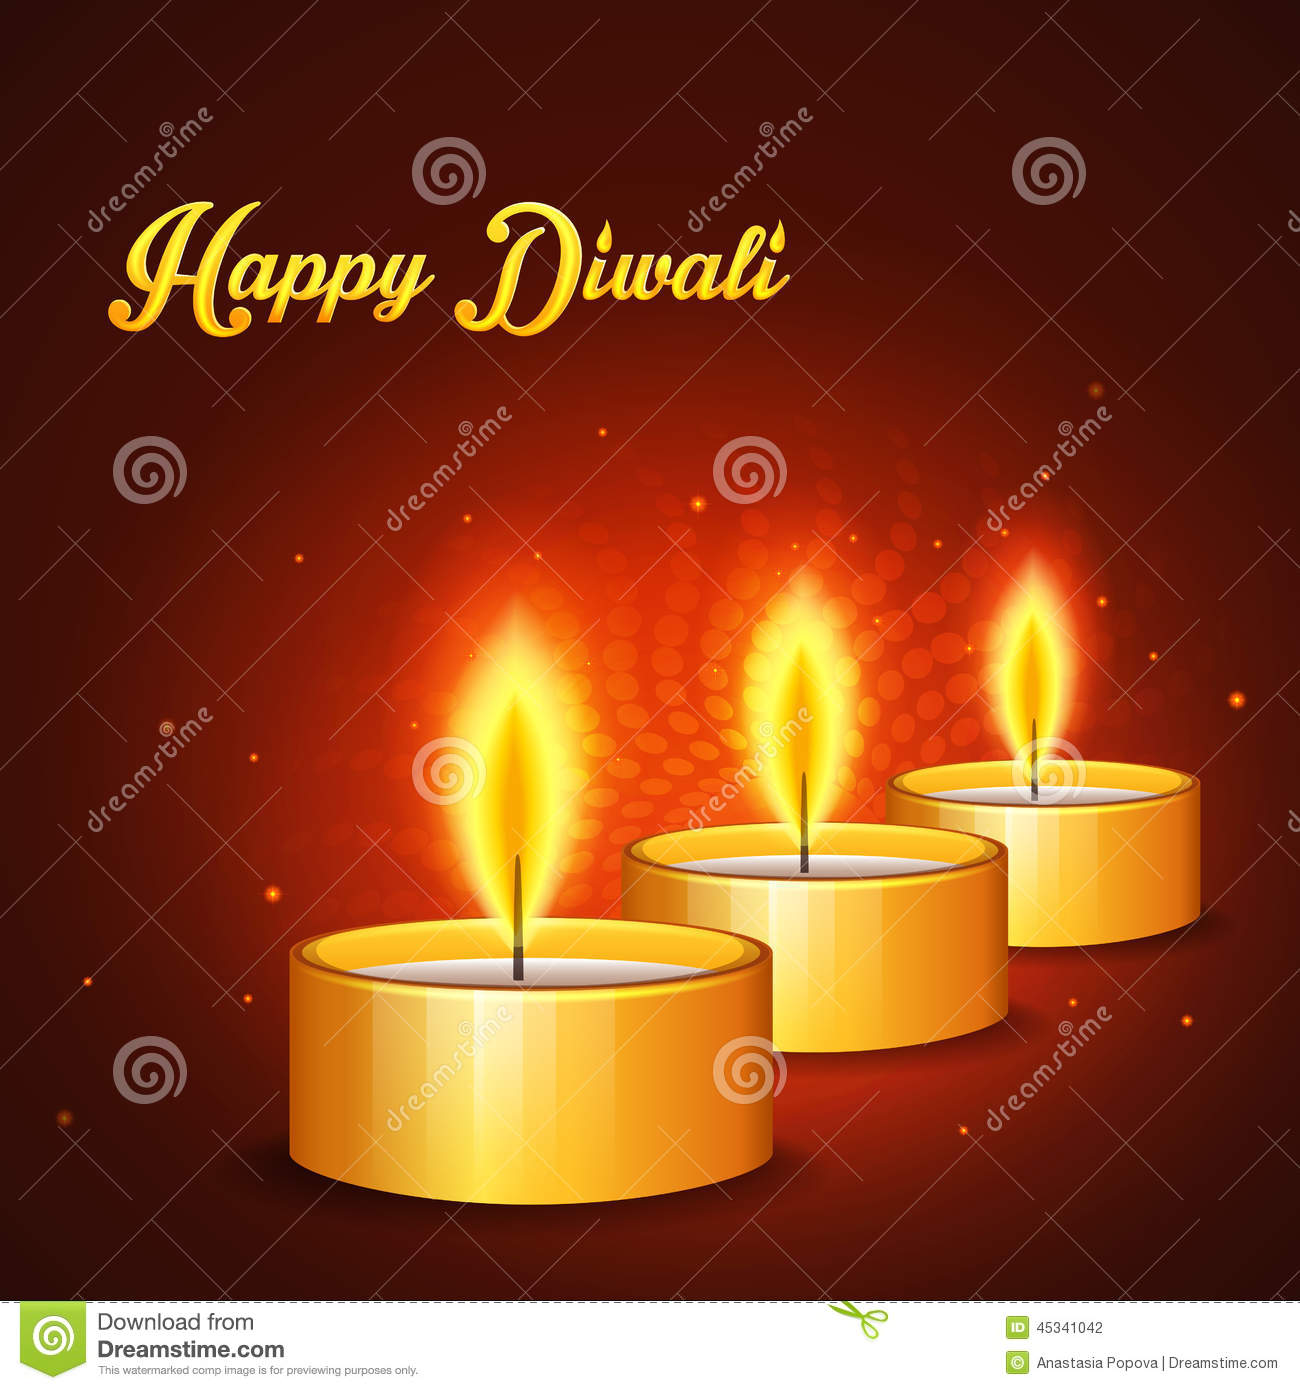 Diwali happy